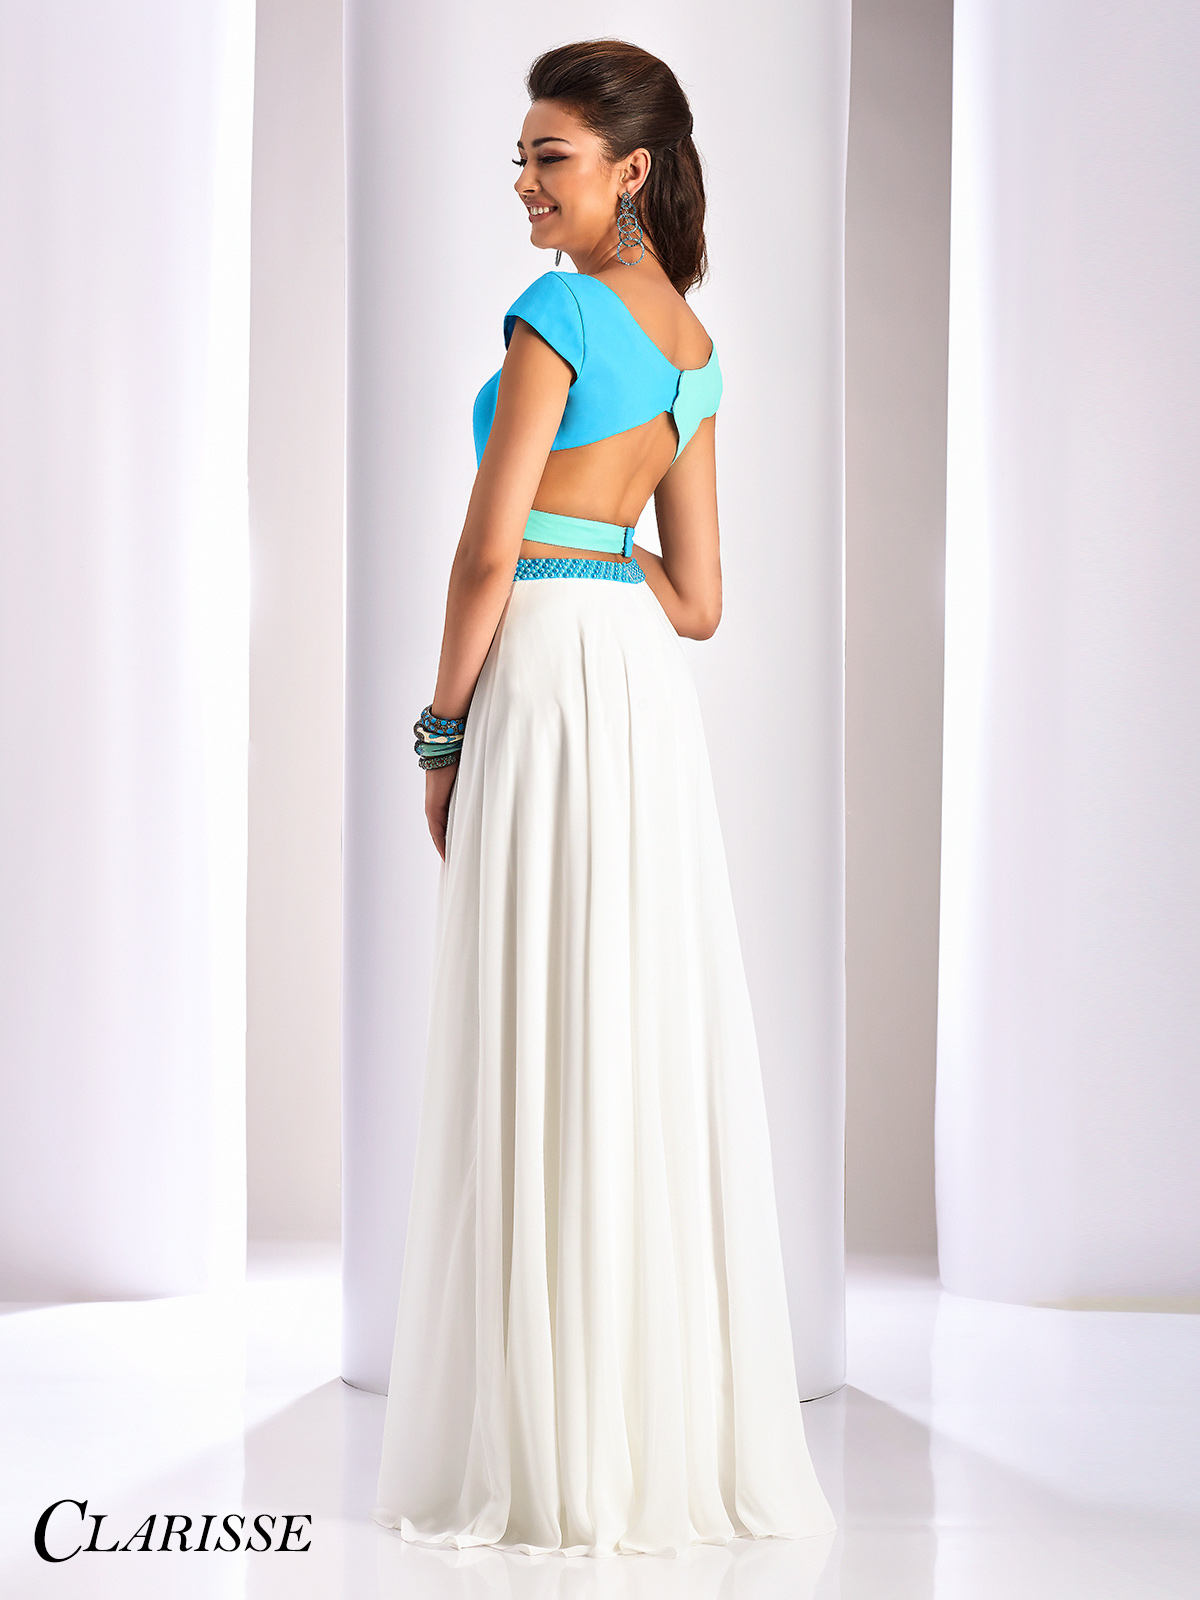 Colorful Prom Dresses In Tyler Tx Image - Wedding Dress Ideas ...